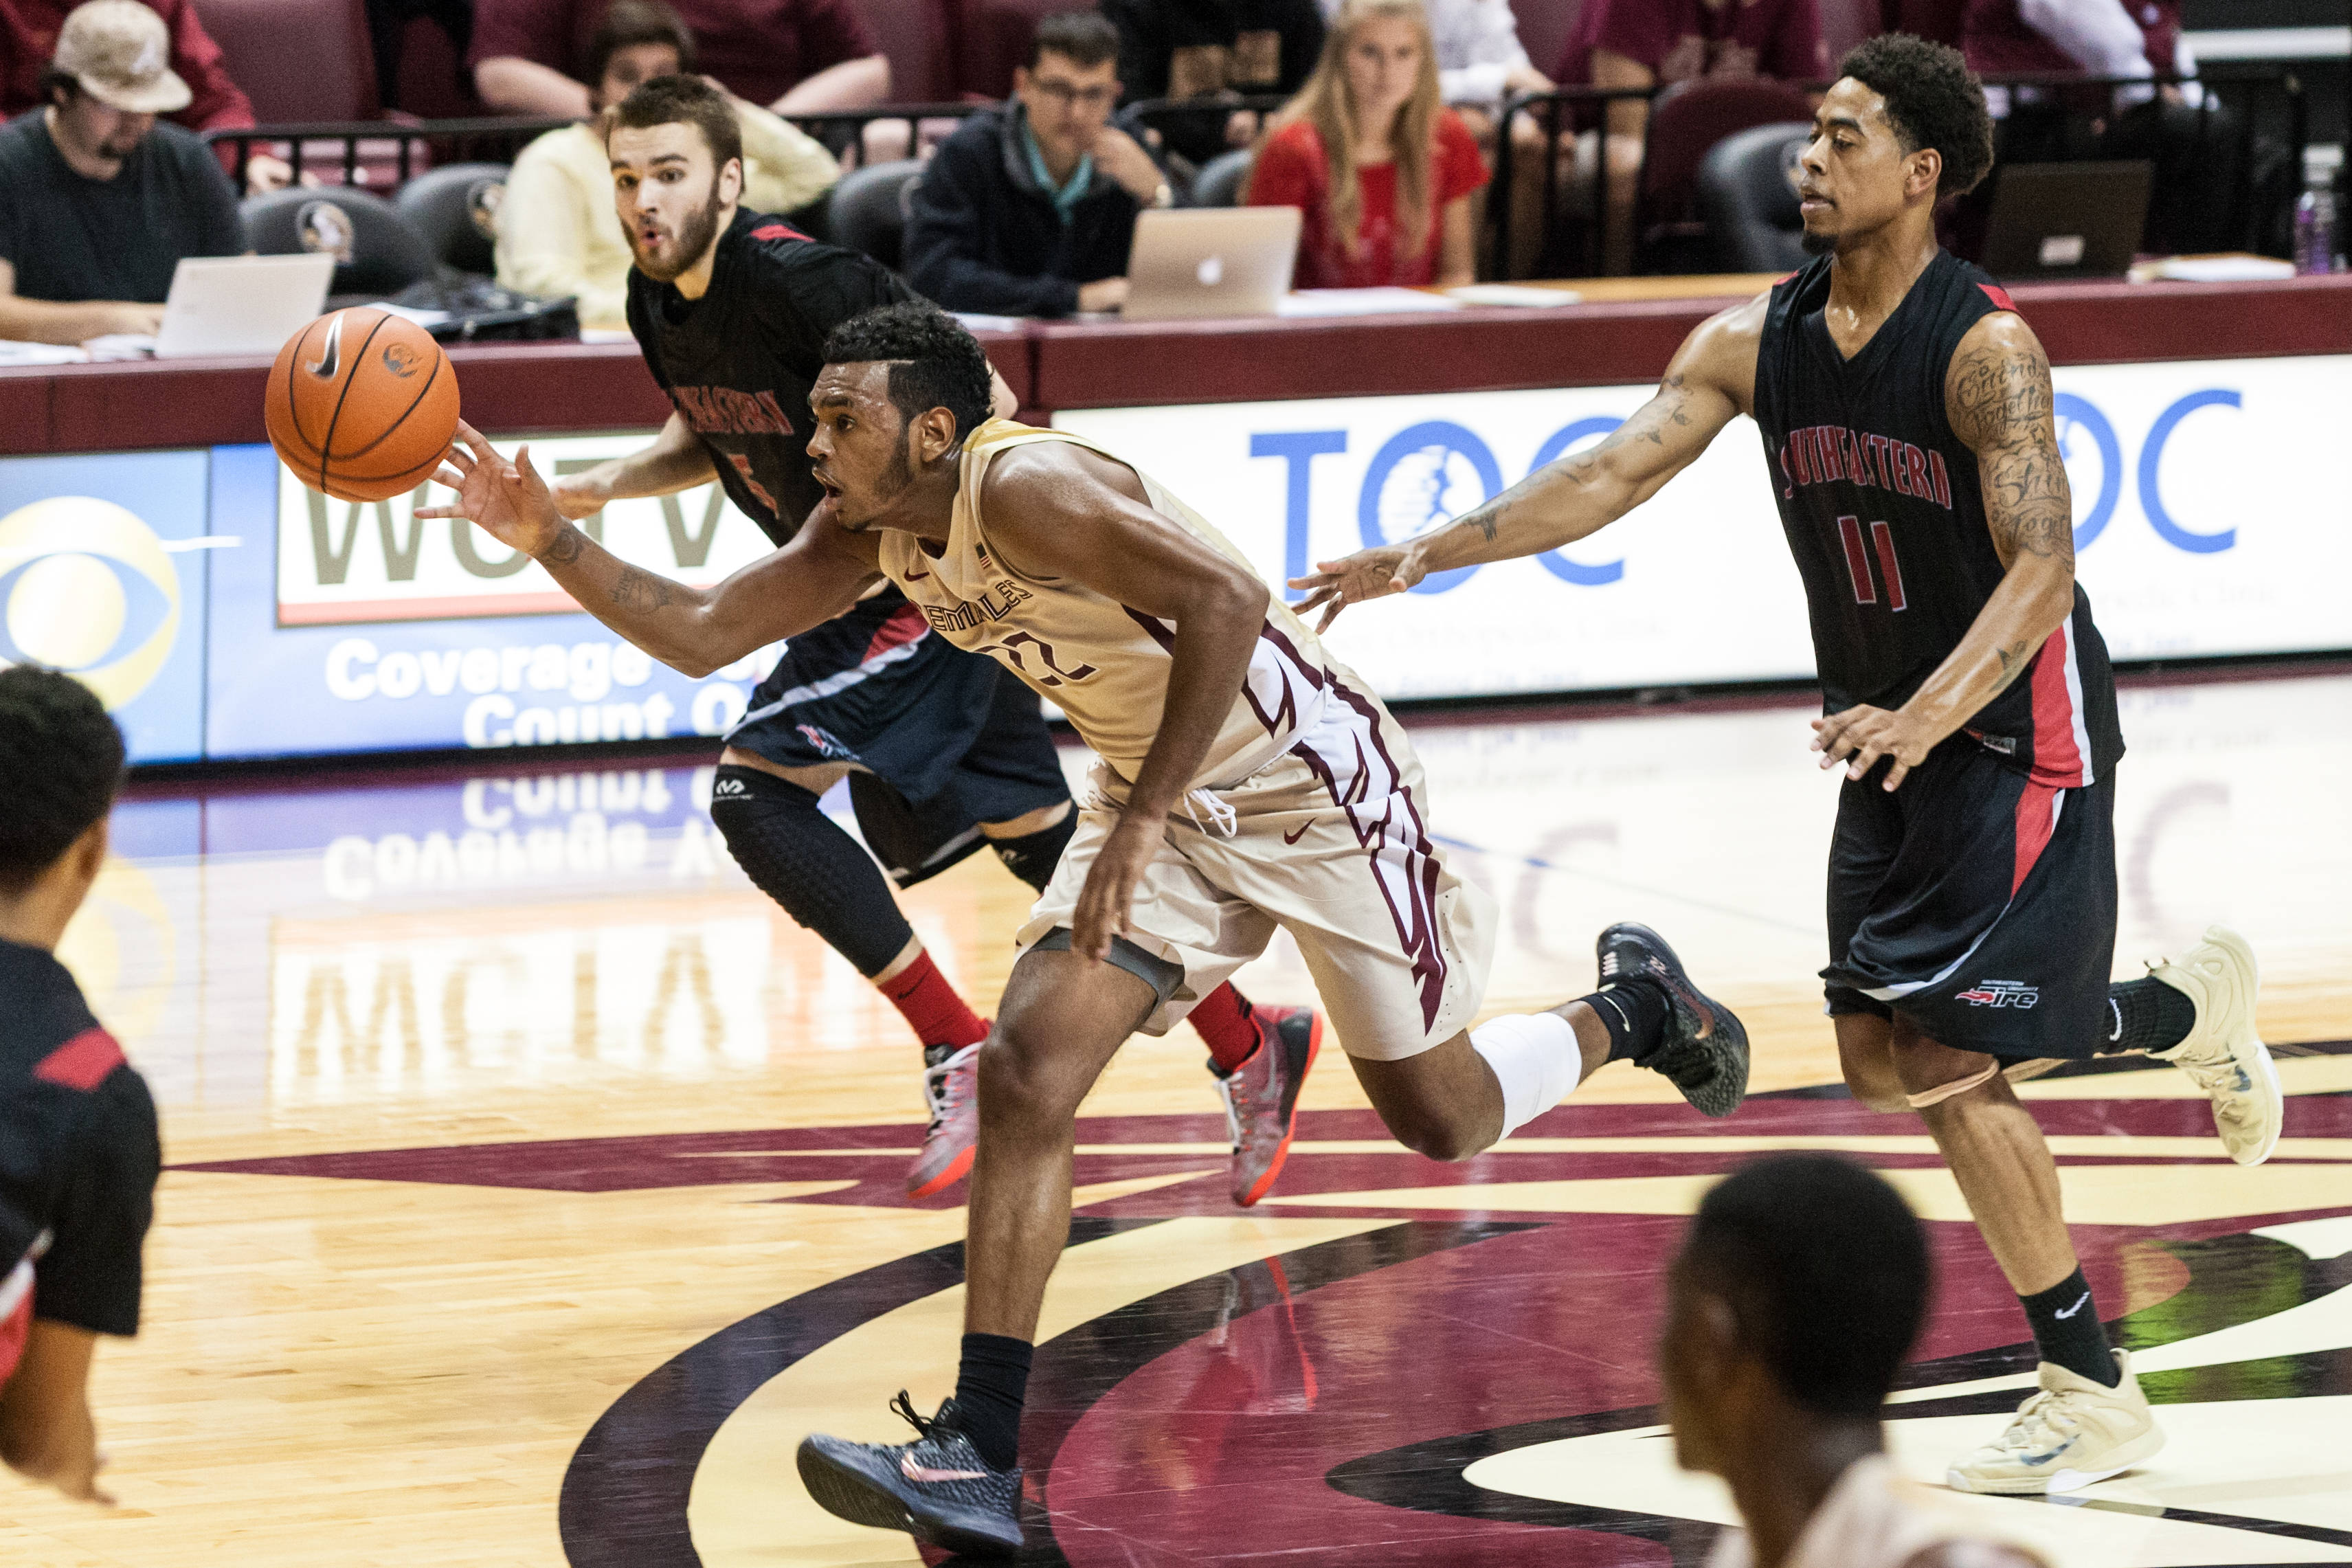 Men's Basketball vs. Southeastern, Nov. 9, 2015